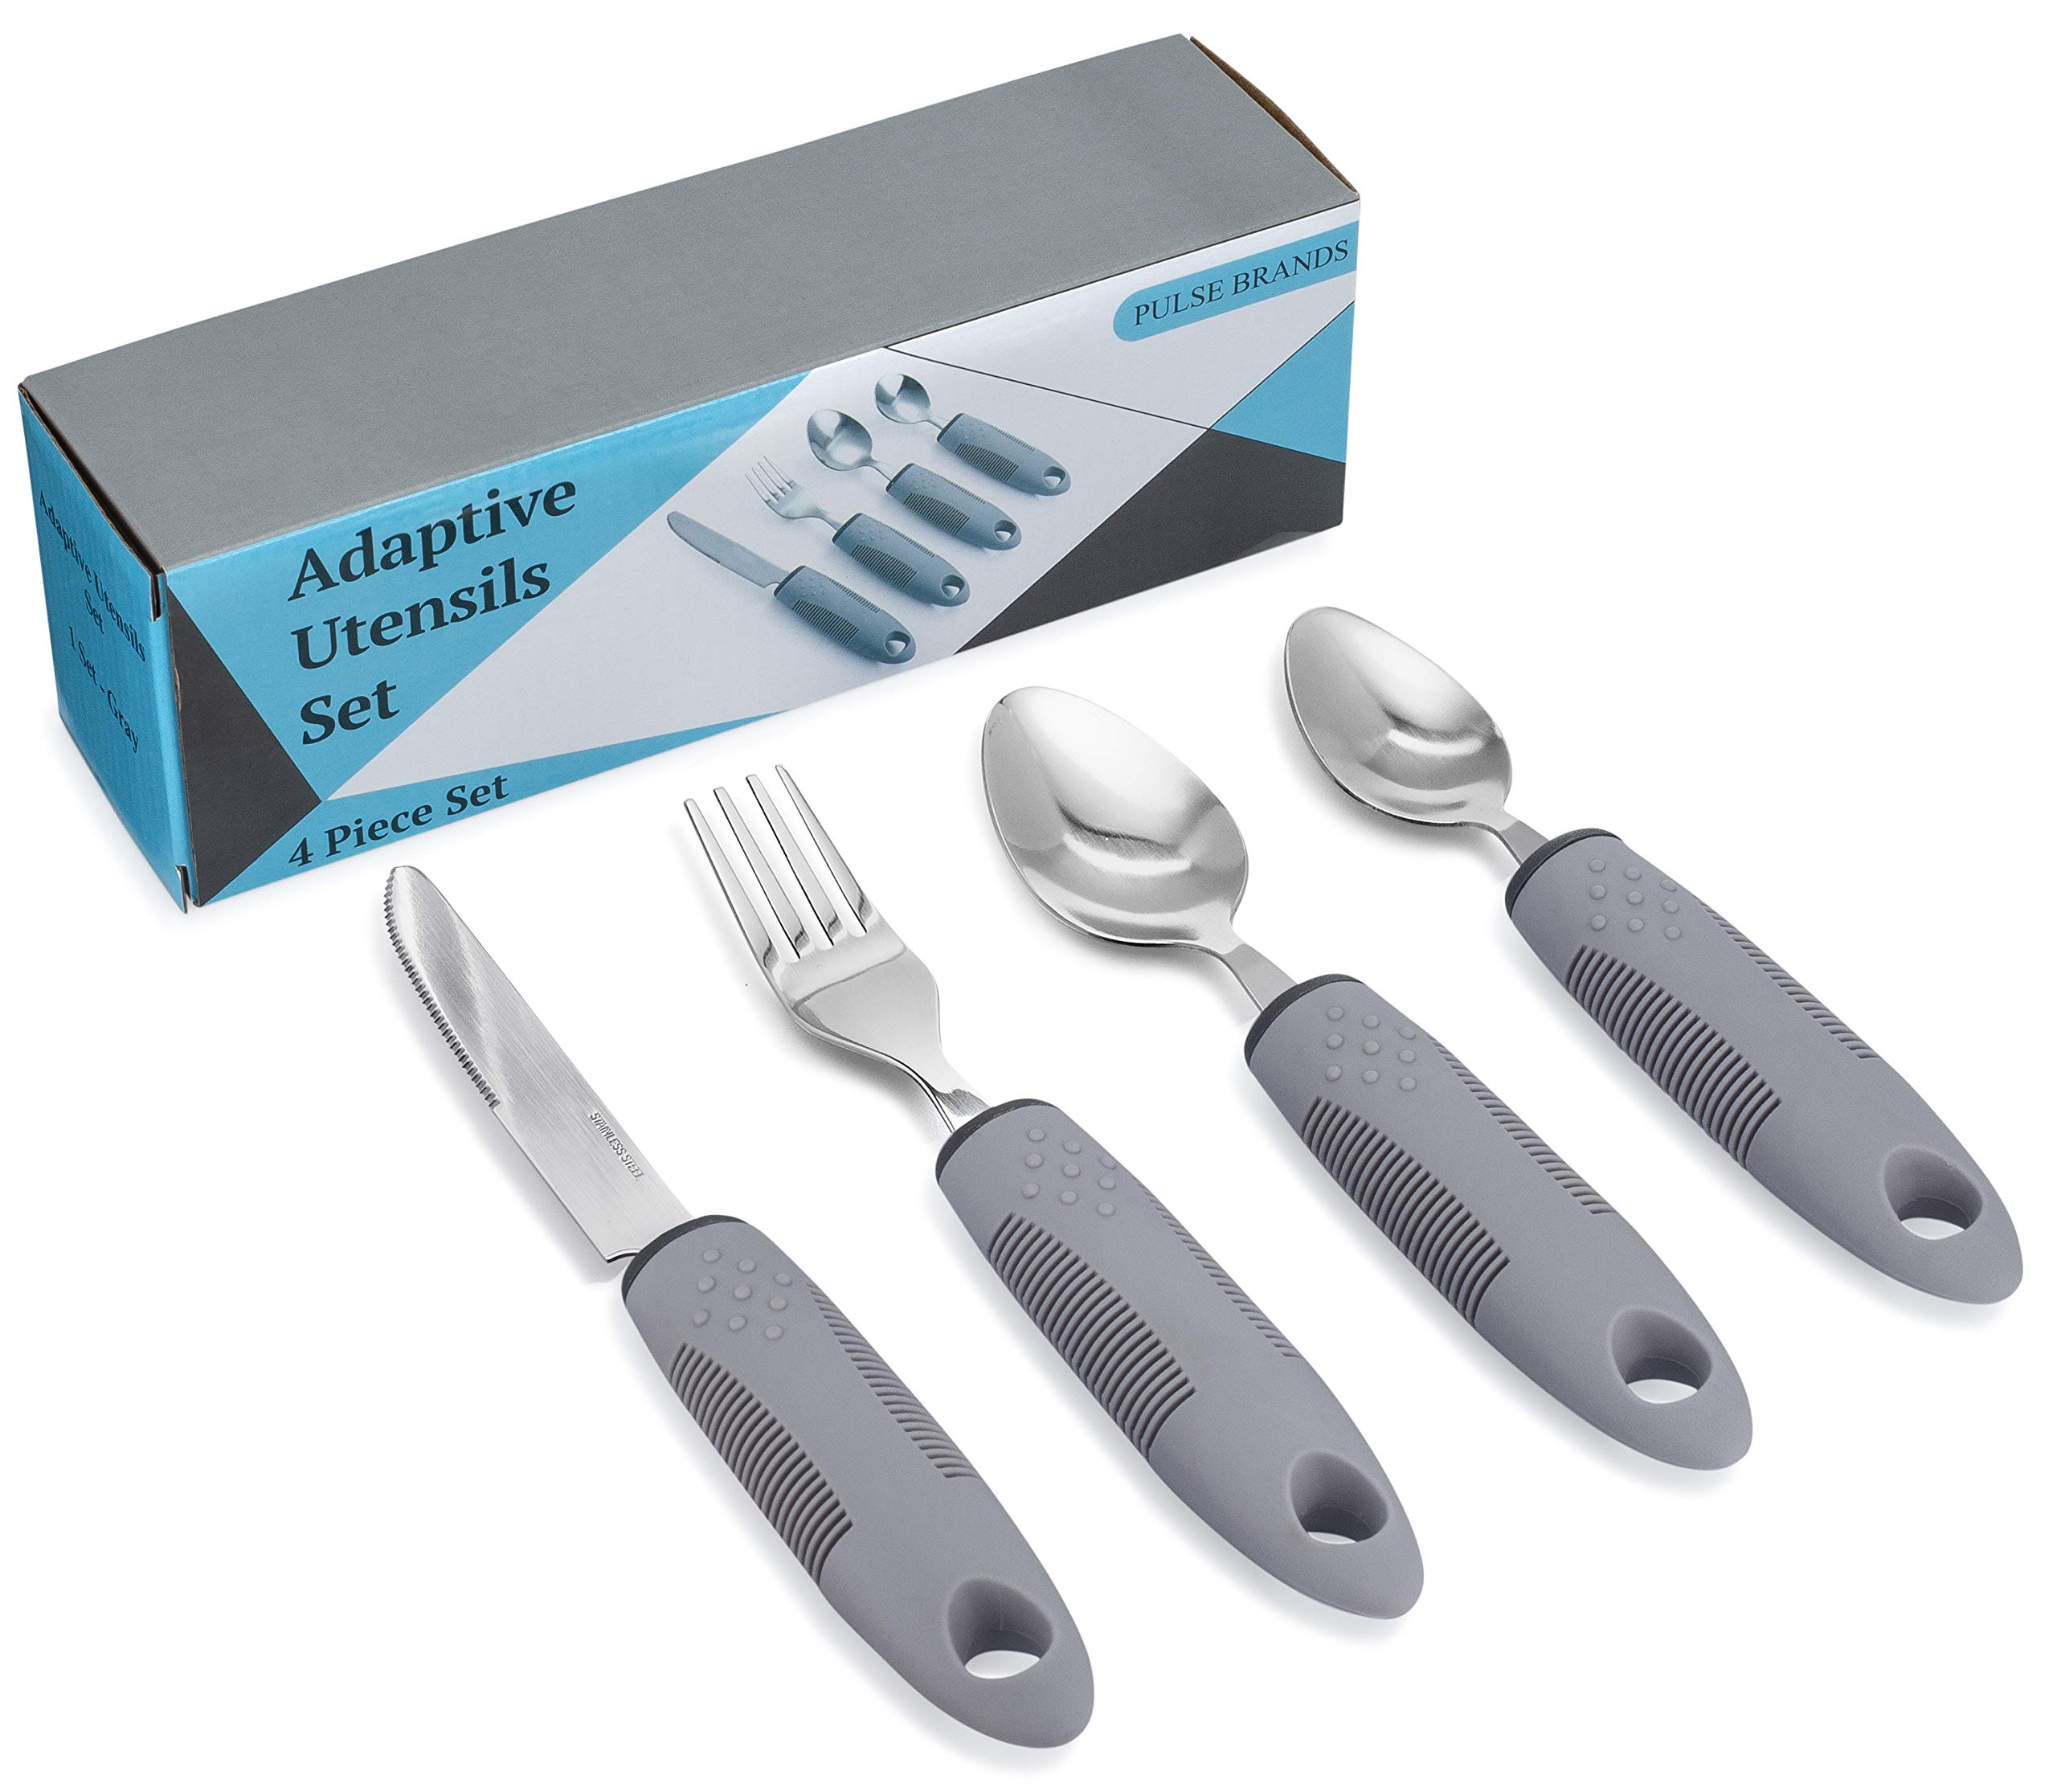 Adaptive Utensils (4-Piece Kitchen Set) Non-Weighted, Non Slip Wide Handles for Hand Tremors, Arthritis, Parkinson's Disease or Elderly use | Cutlery Silverware - Knife, Fork, Spoons (Gray - 1 Set) by Pulse Brands